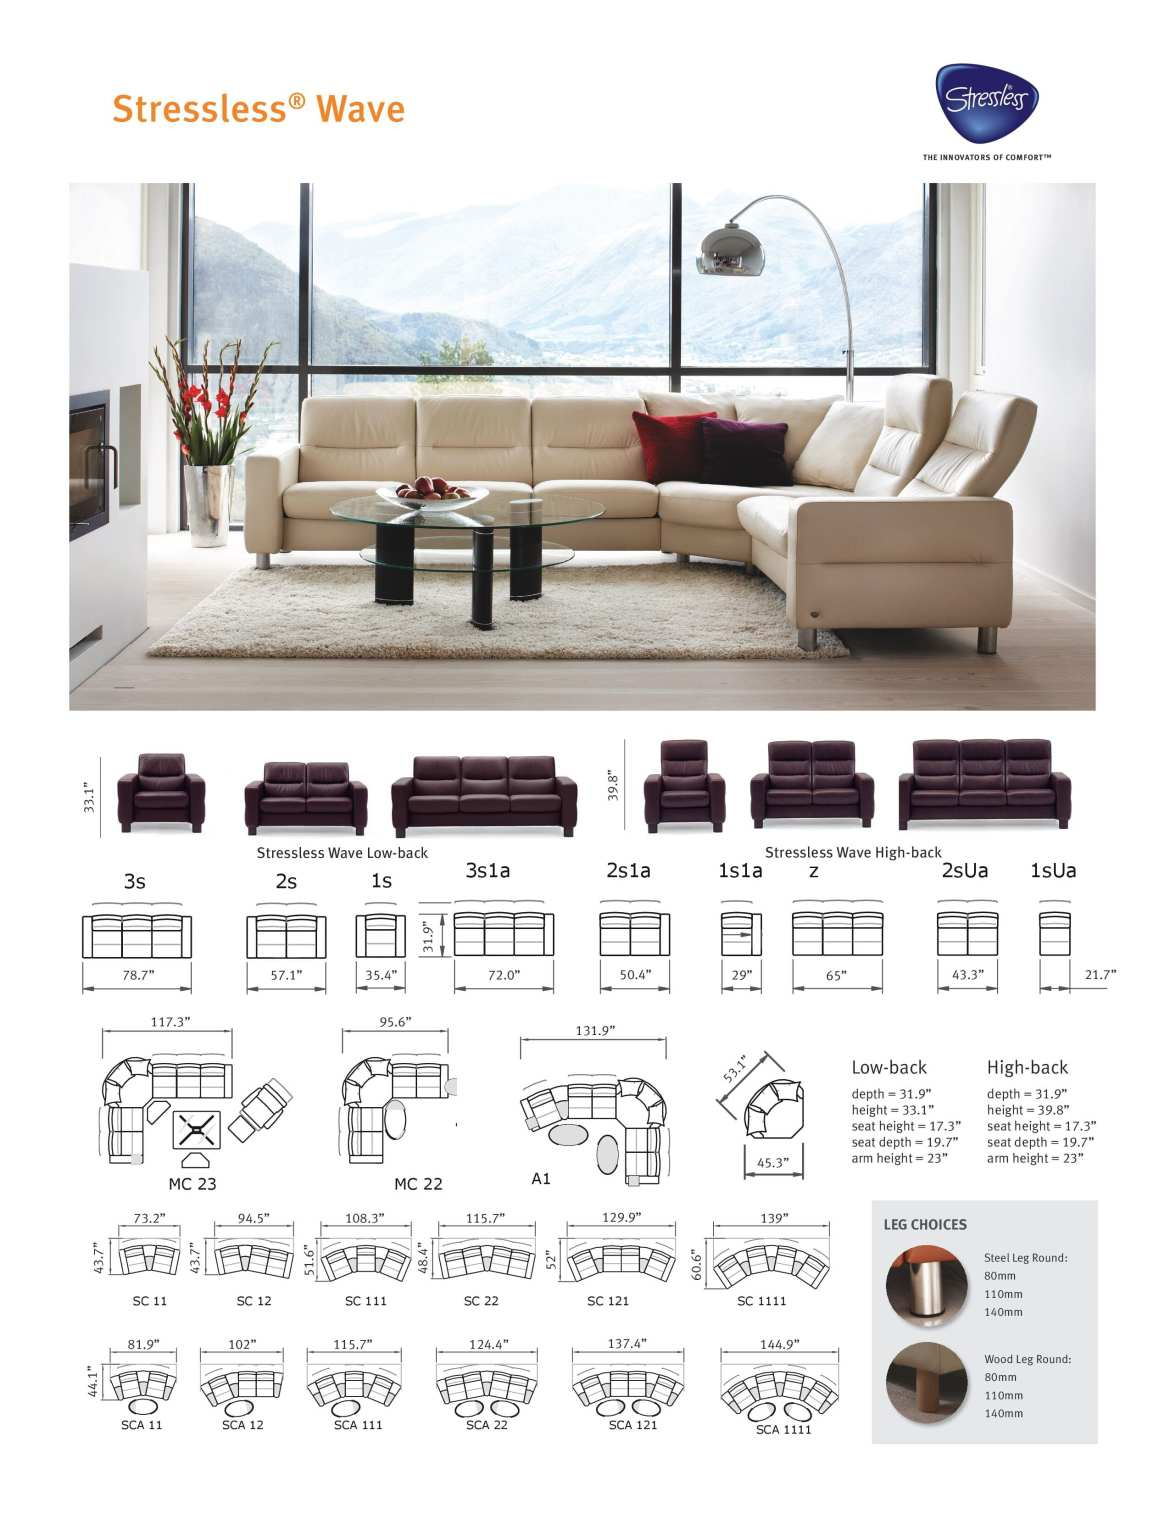 Wave Stressless Product Sheet